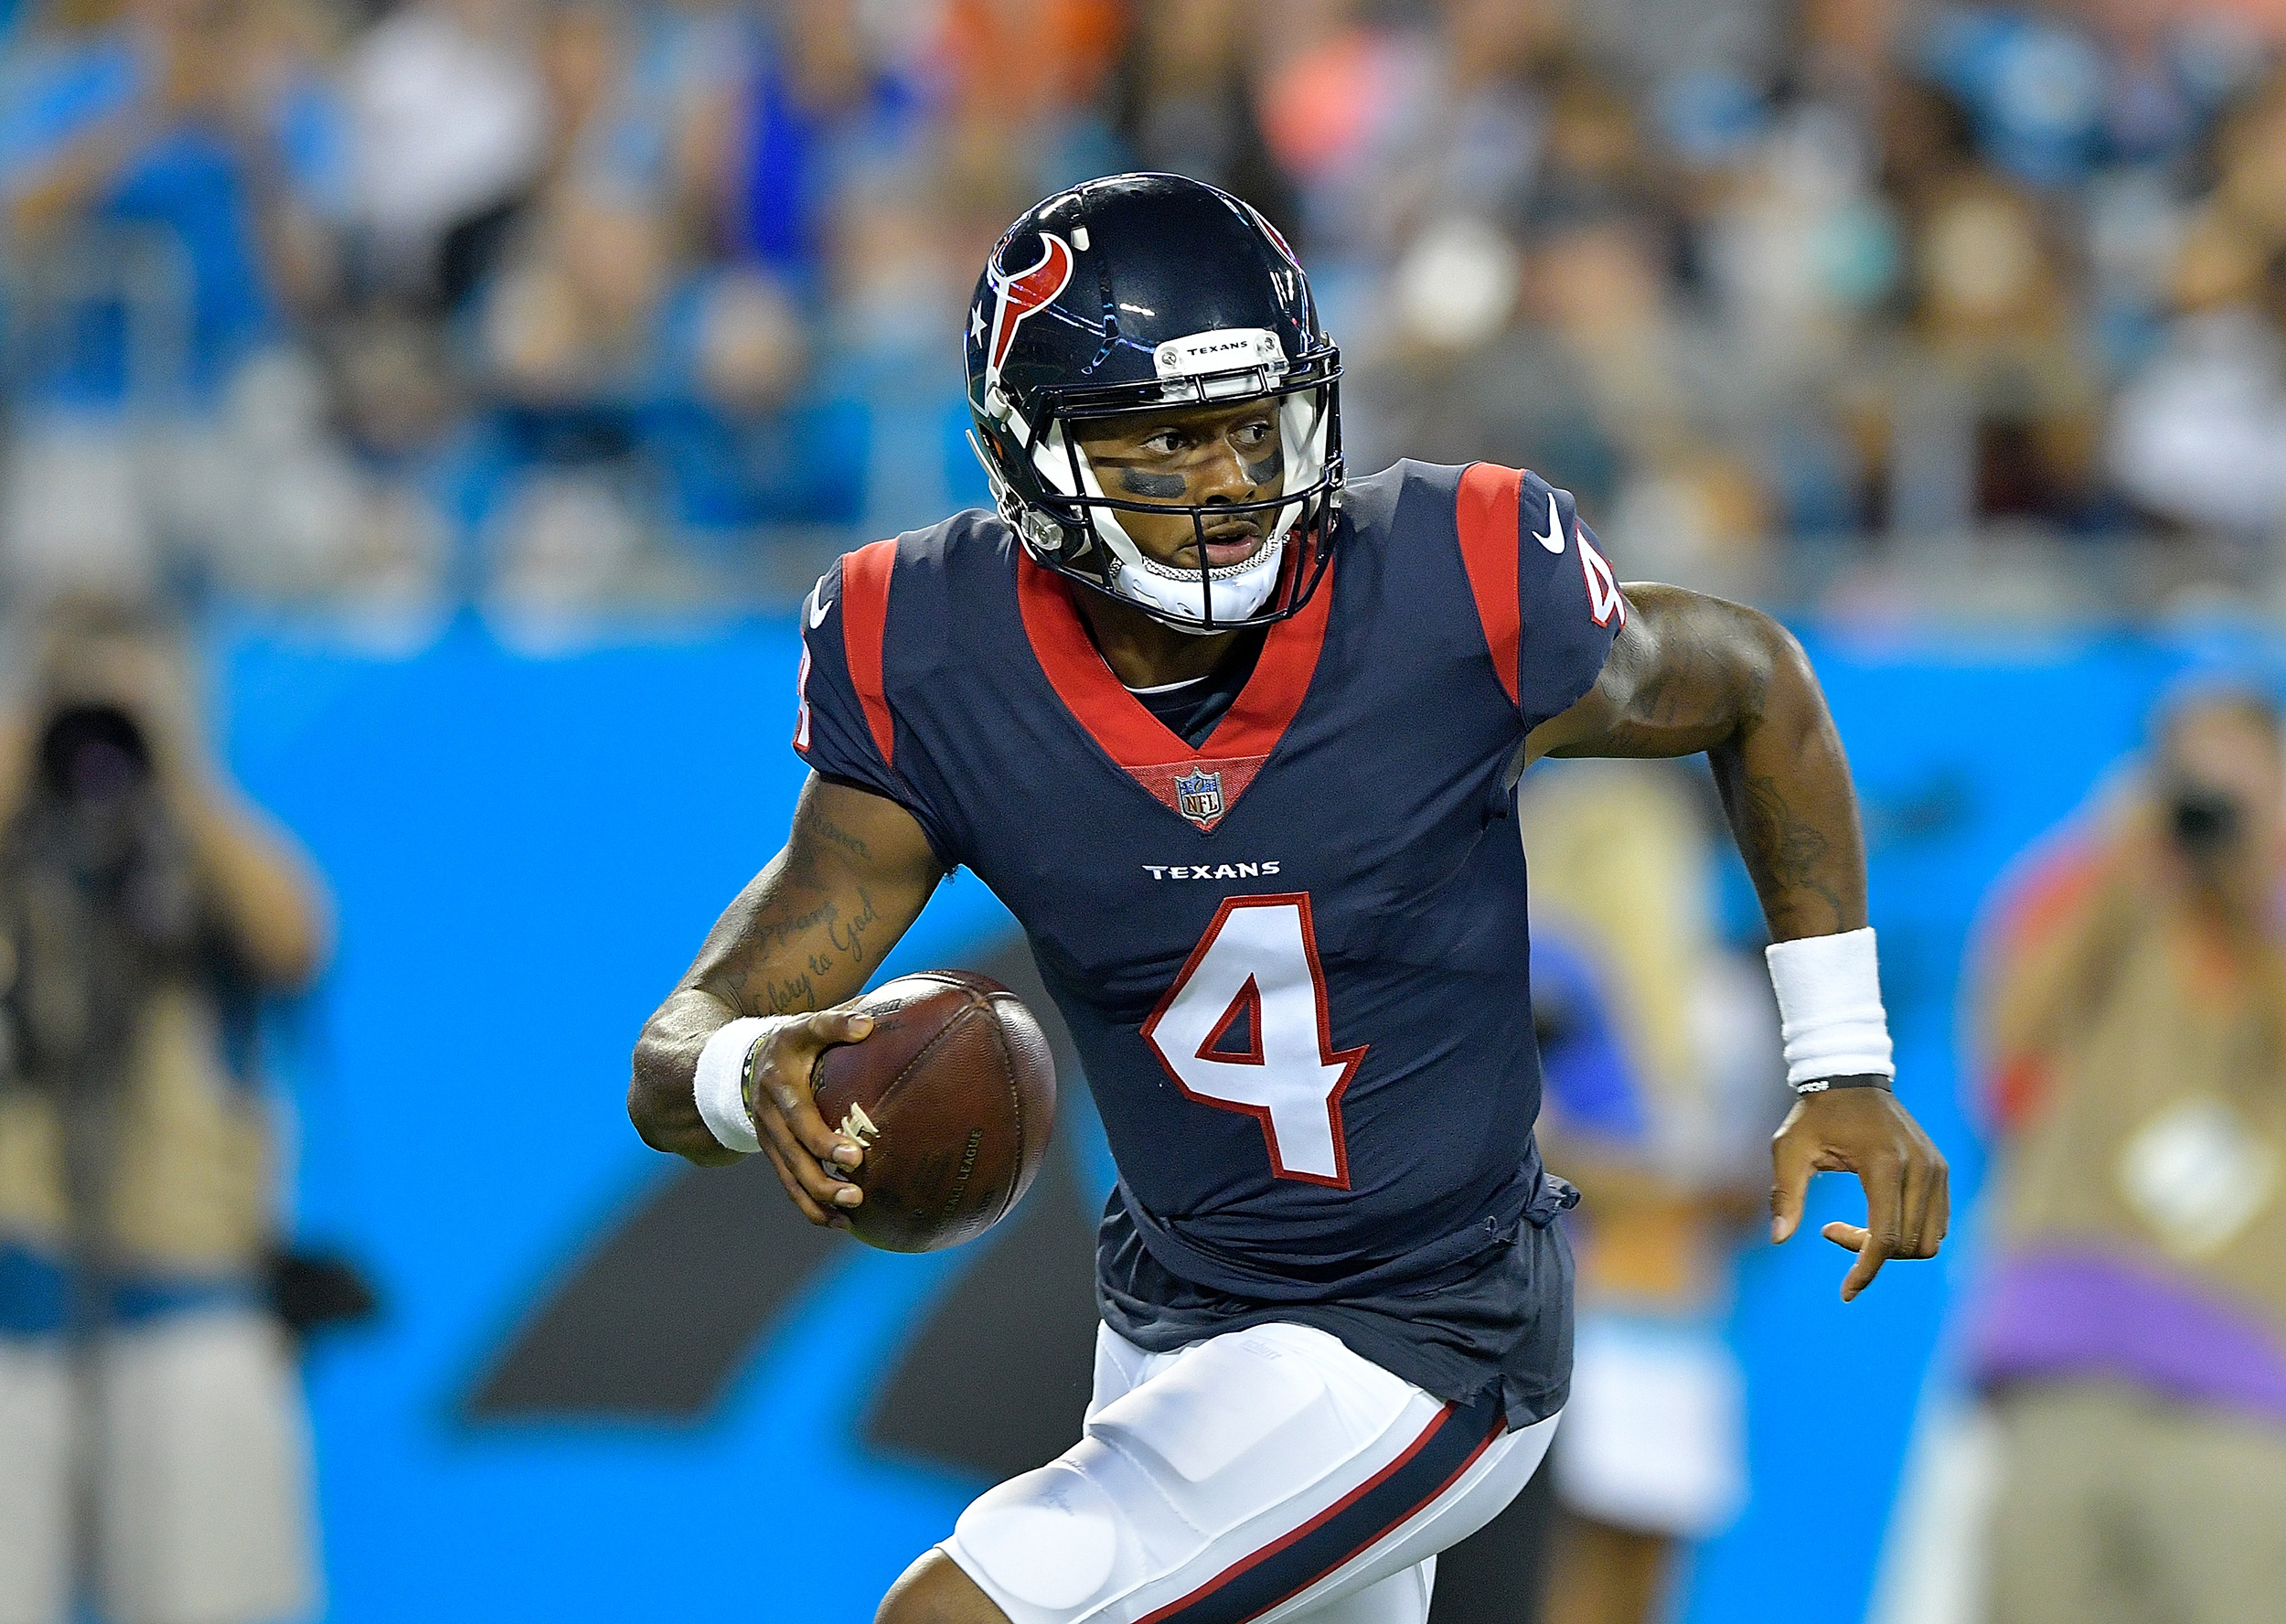 Image: Deshaun Watson #4 of the Houston Texans